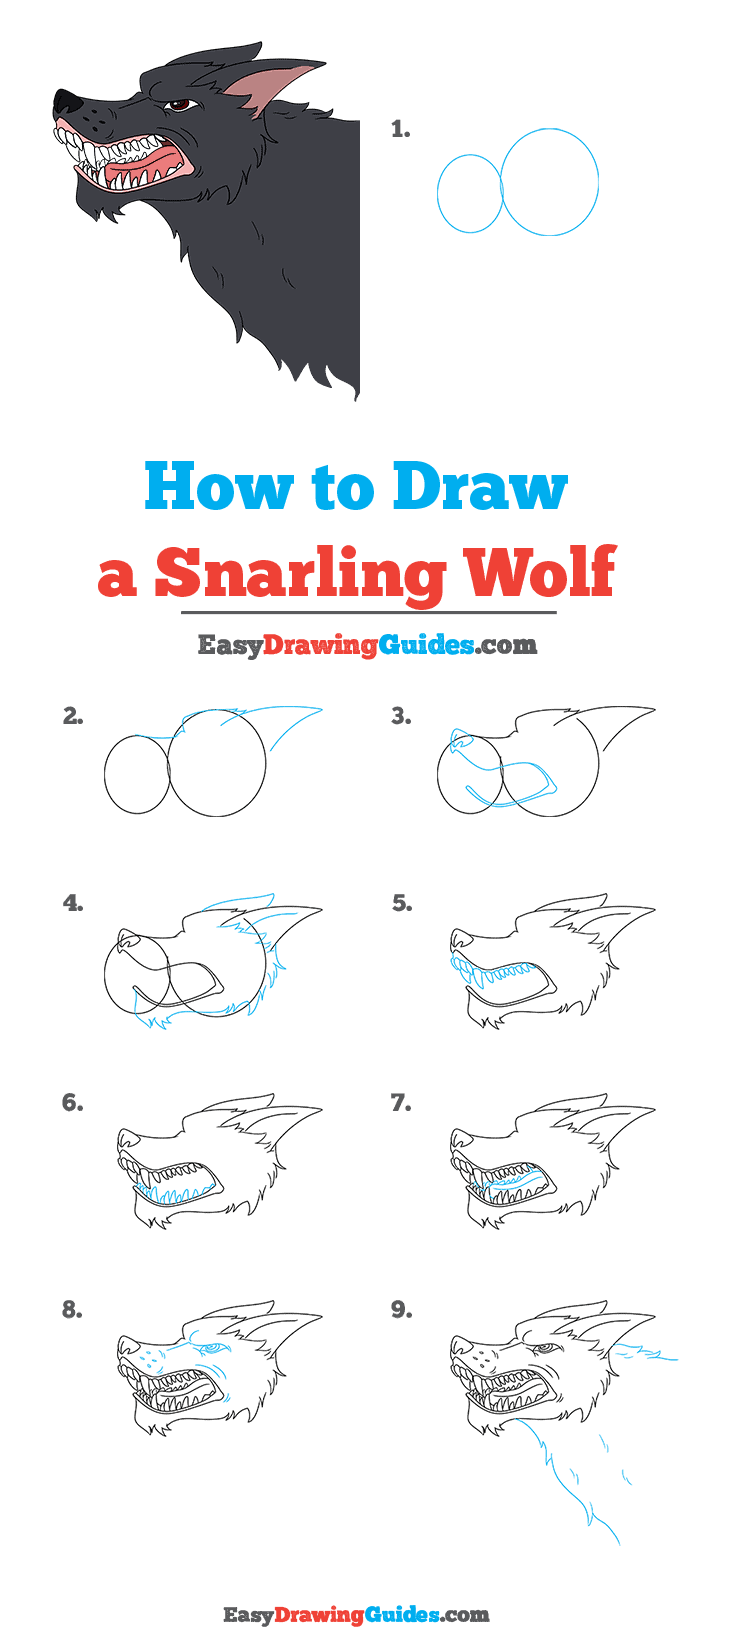 How to Draw a Snarling Wolf Step by Step Tutorial Image